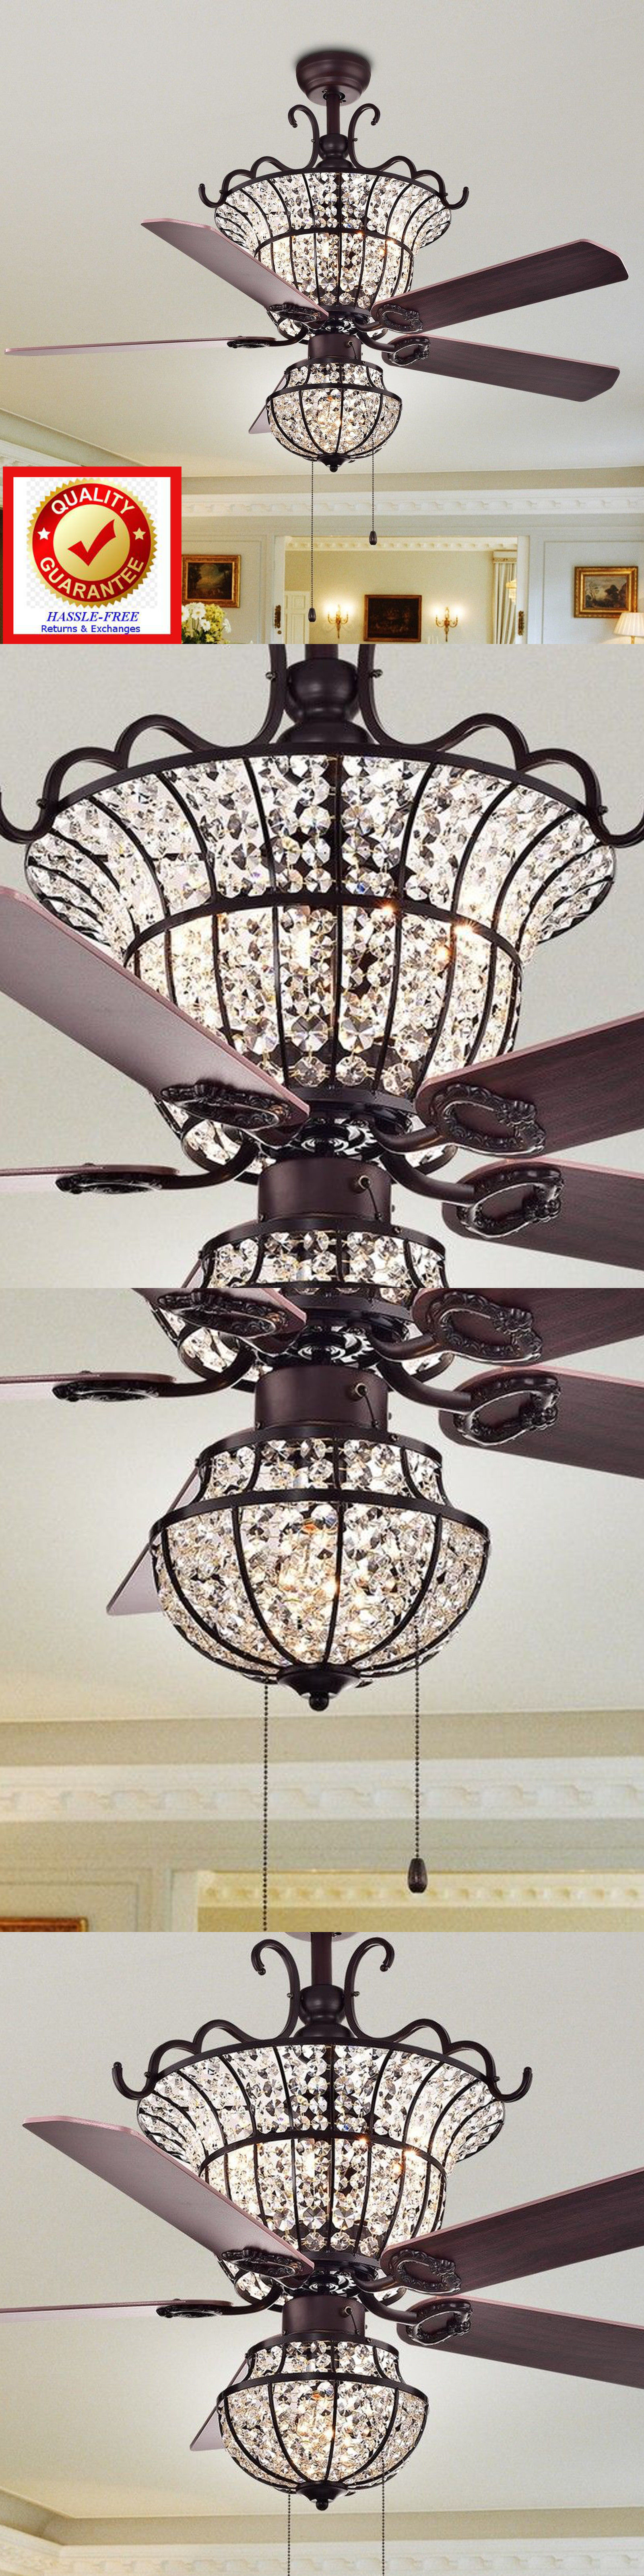 Ceiling Fans Crystal Chandelier Ceiling Fan Bronze Fin 4